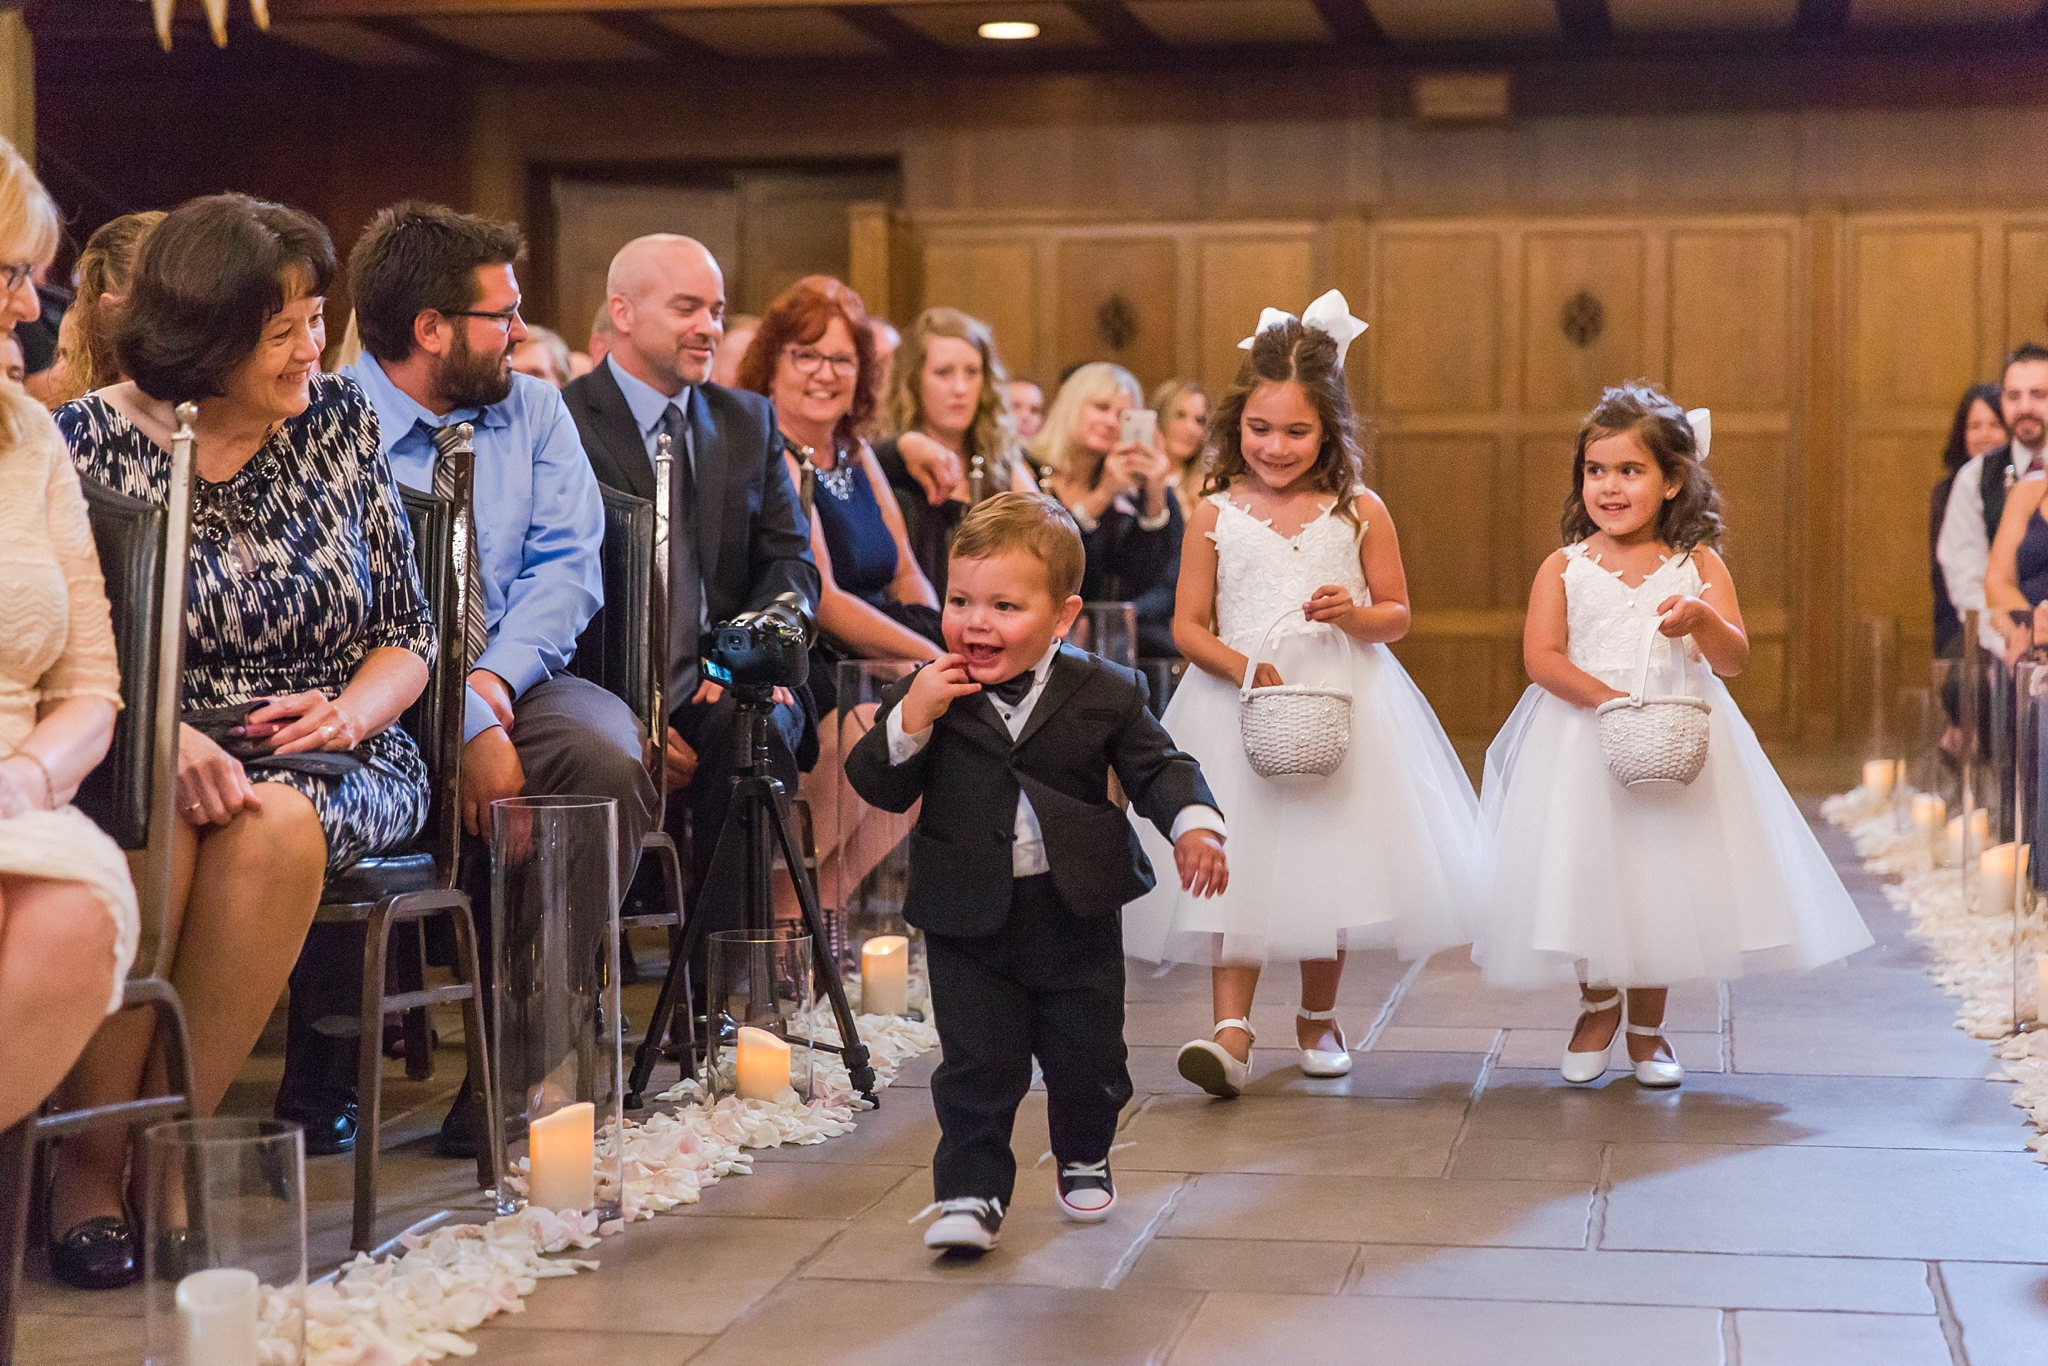 candid-romantic-wedding-photos-at-the-masonic-temple-belle-isle-detroit-institute-of-arts-in-detroit-michigan-by-courtney-carolyn-photography_0067.jpg